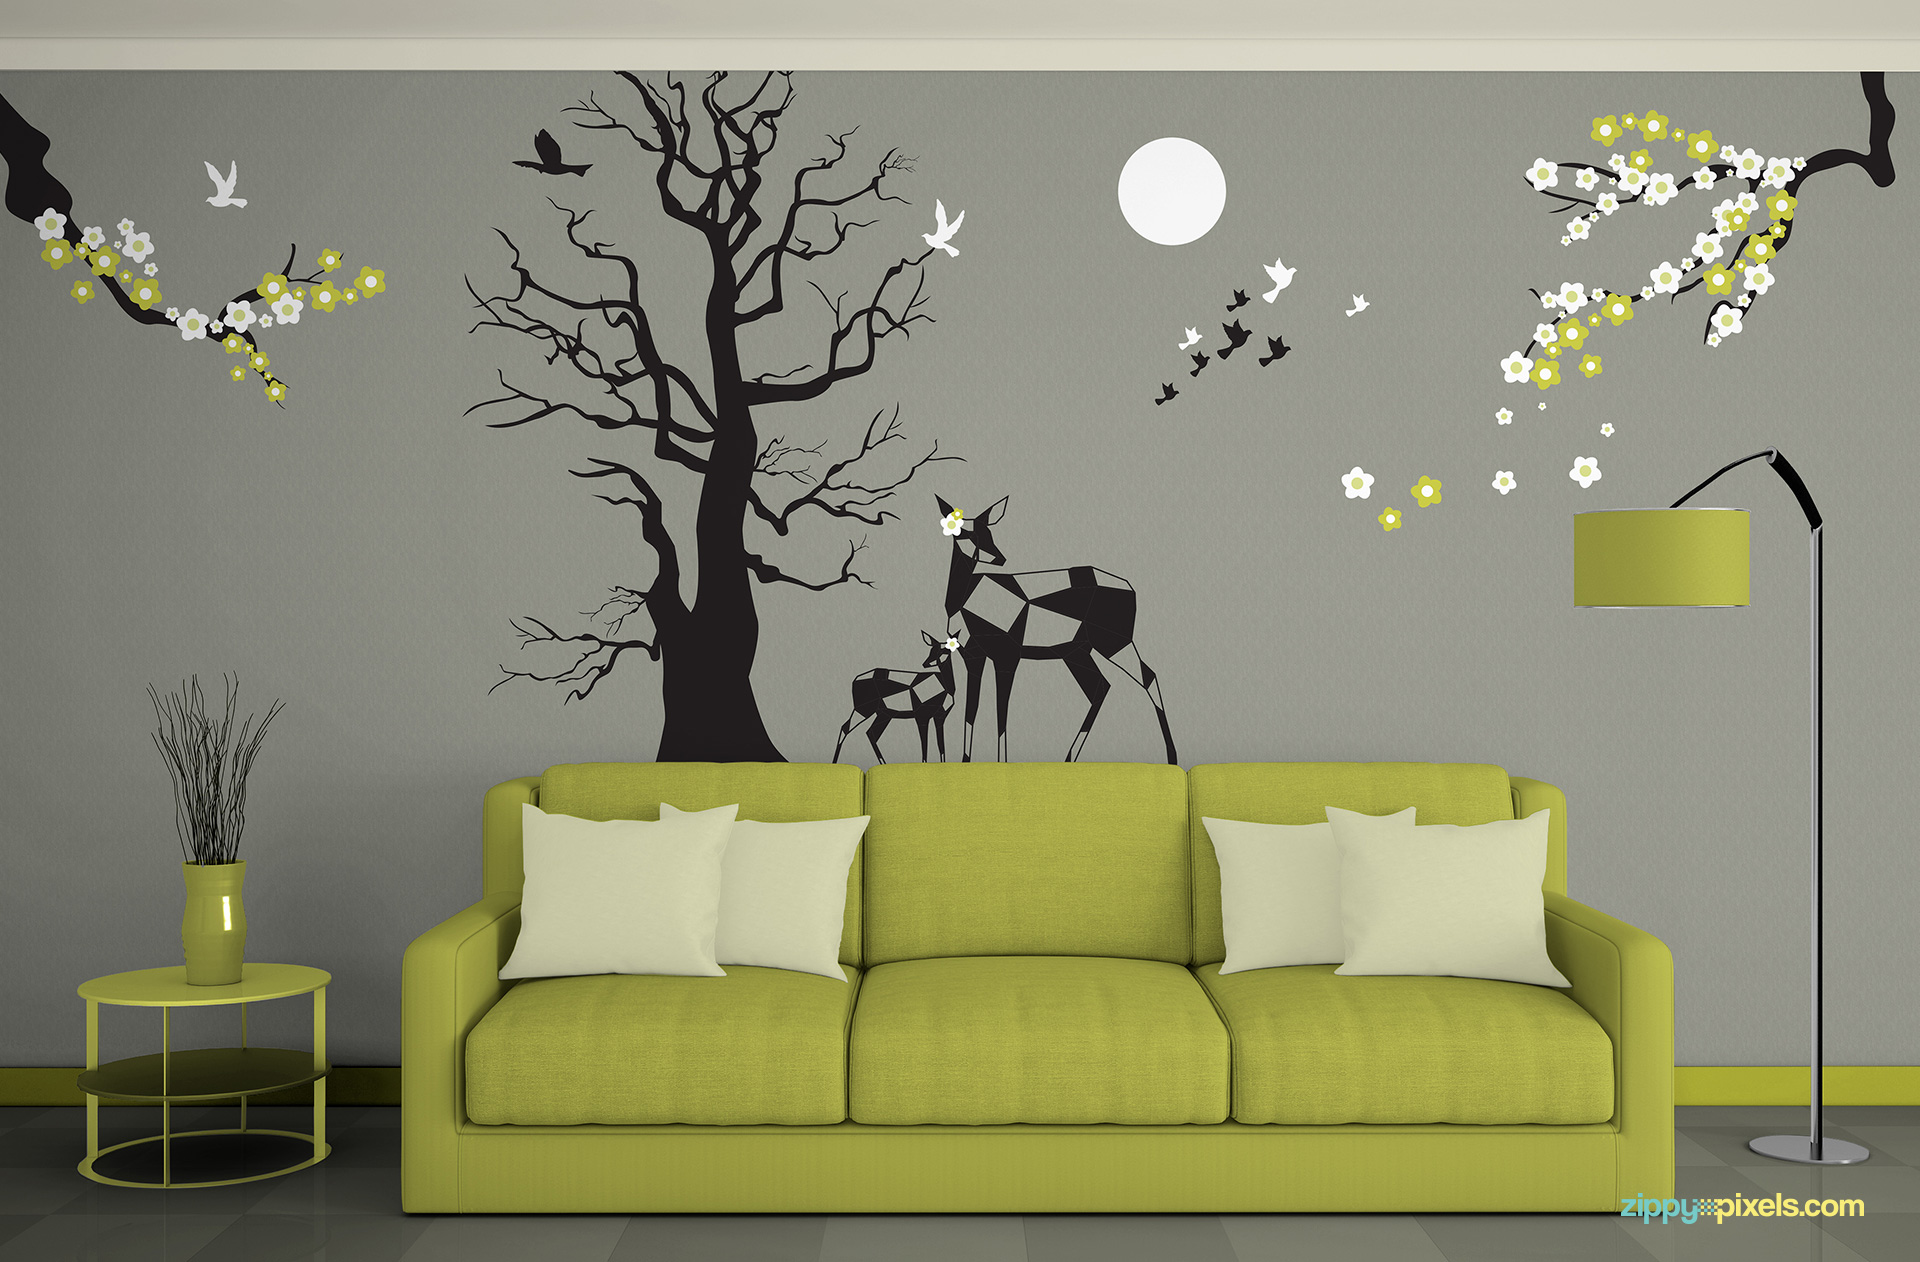 Free wall art mockup to showcase your wall designs